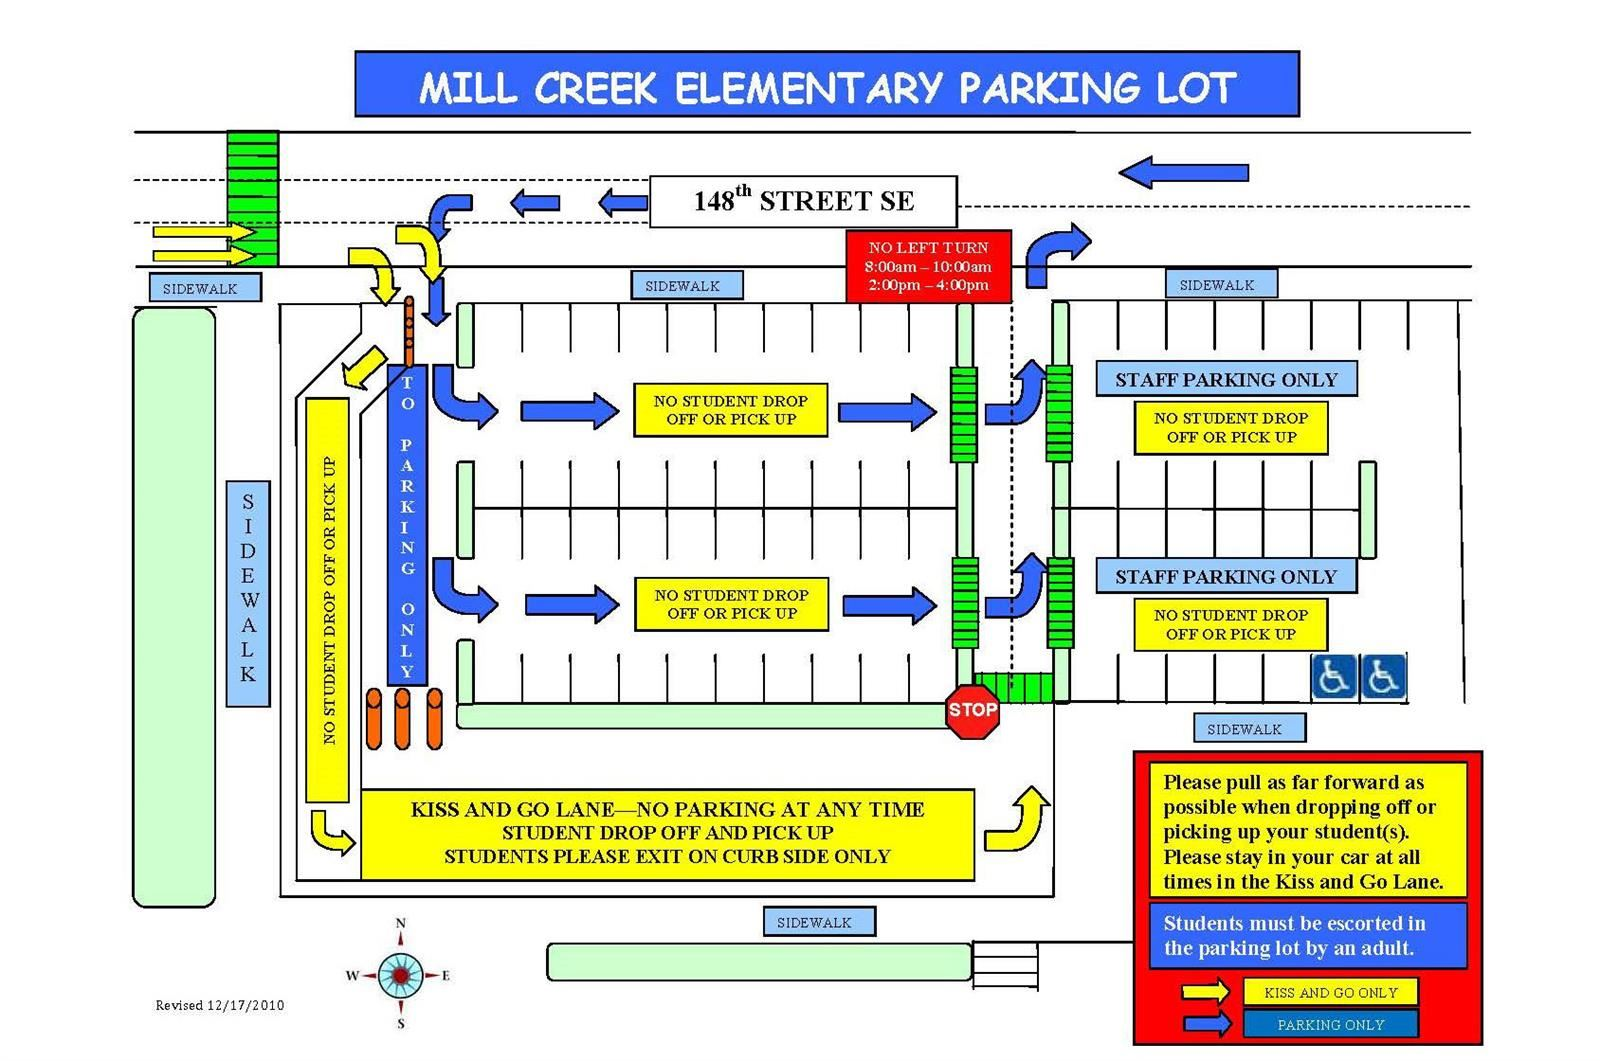 MCE Parking Lot Procedures